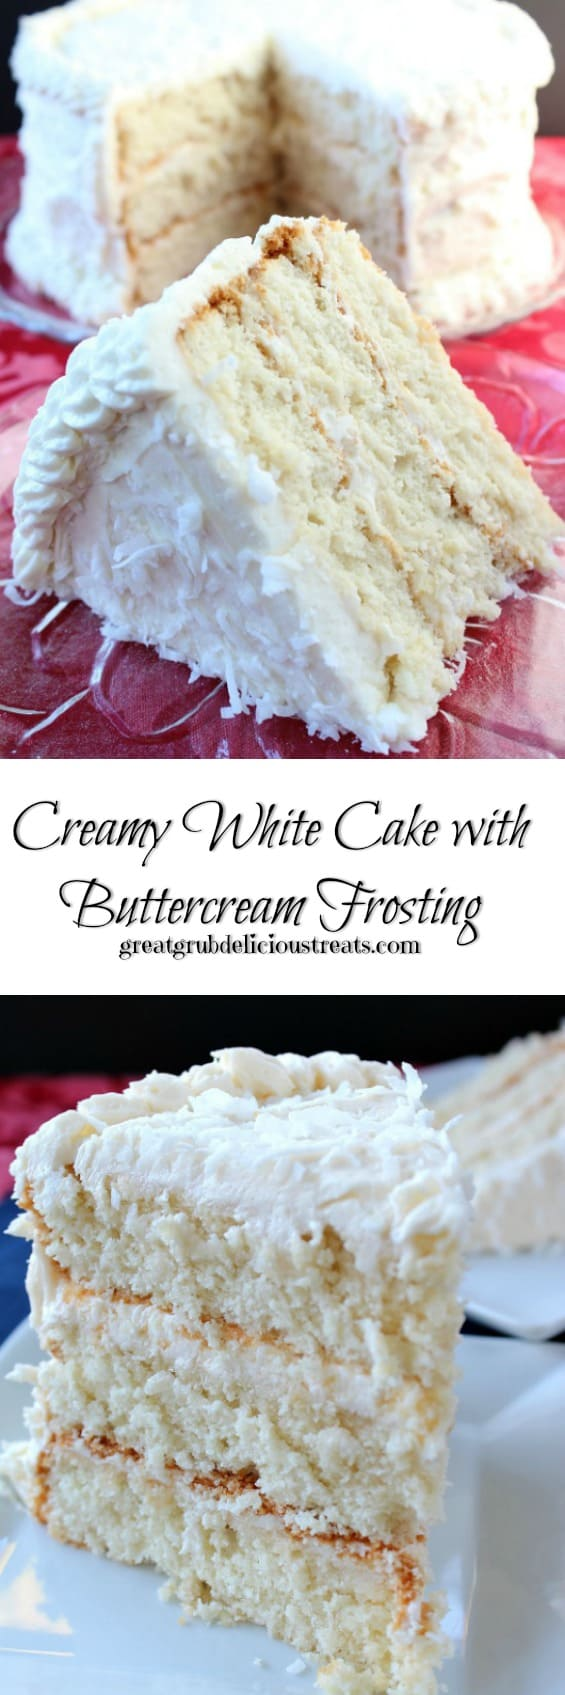 Frosting For White Cake With Strawberry Filling